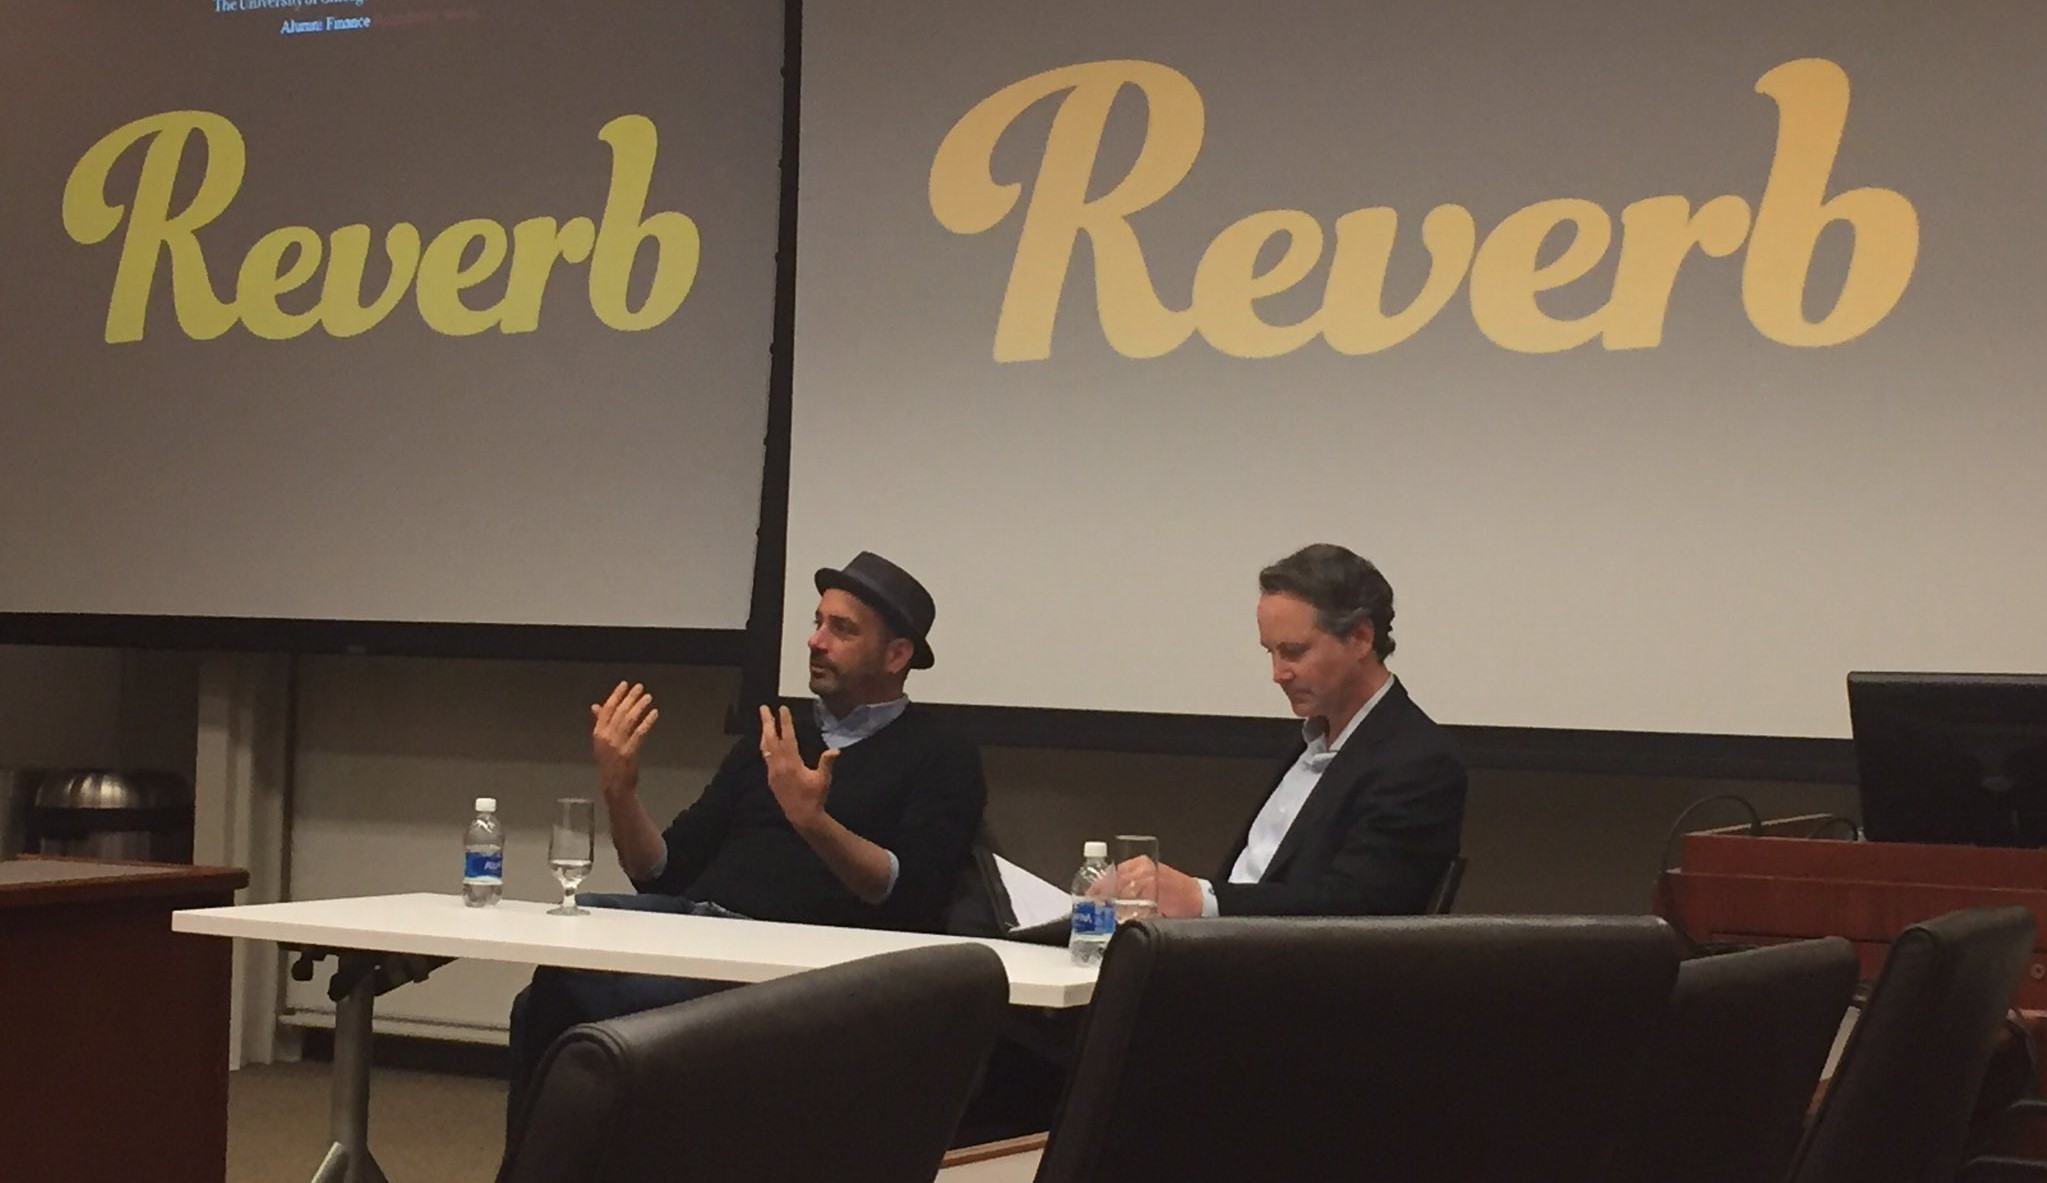 Reverb founder and CEO speak in a meetup event